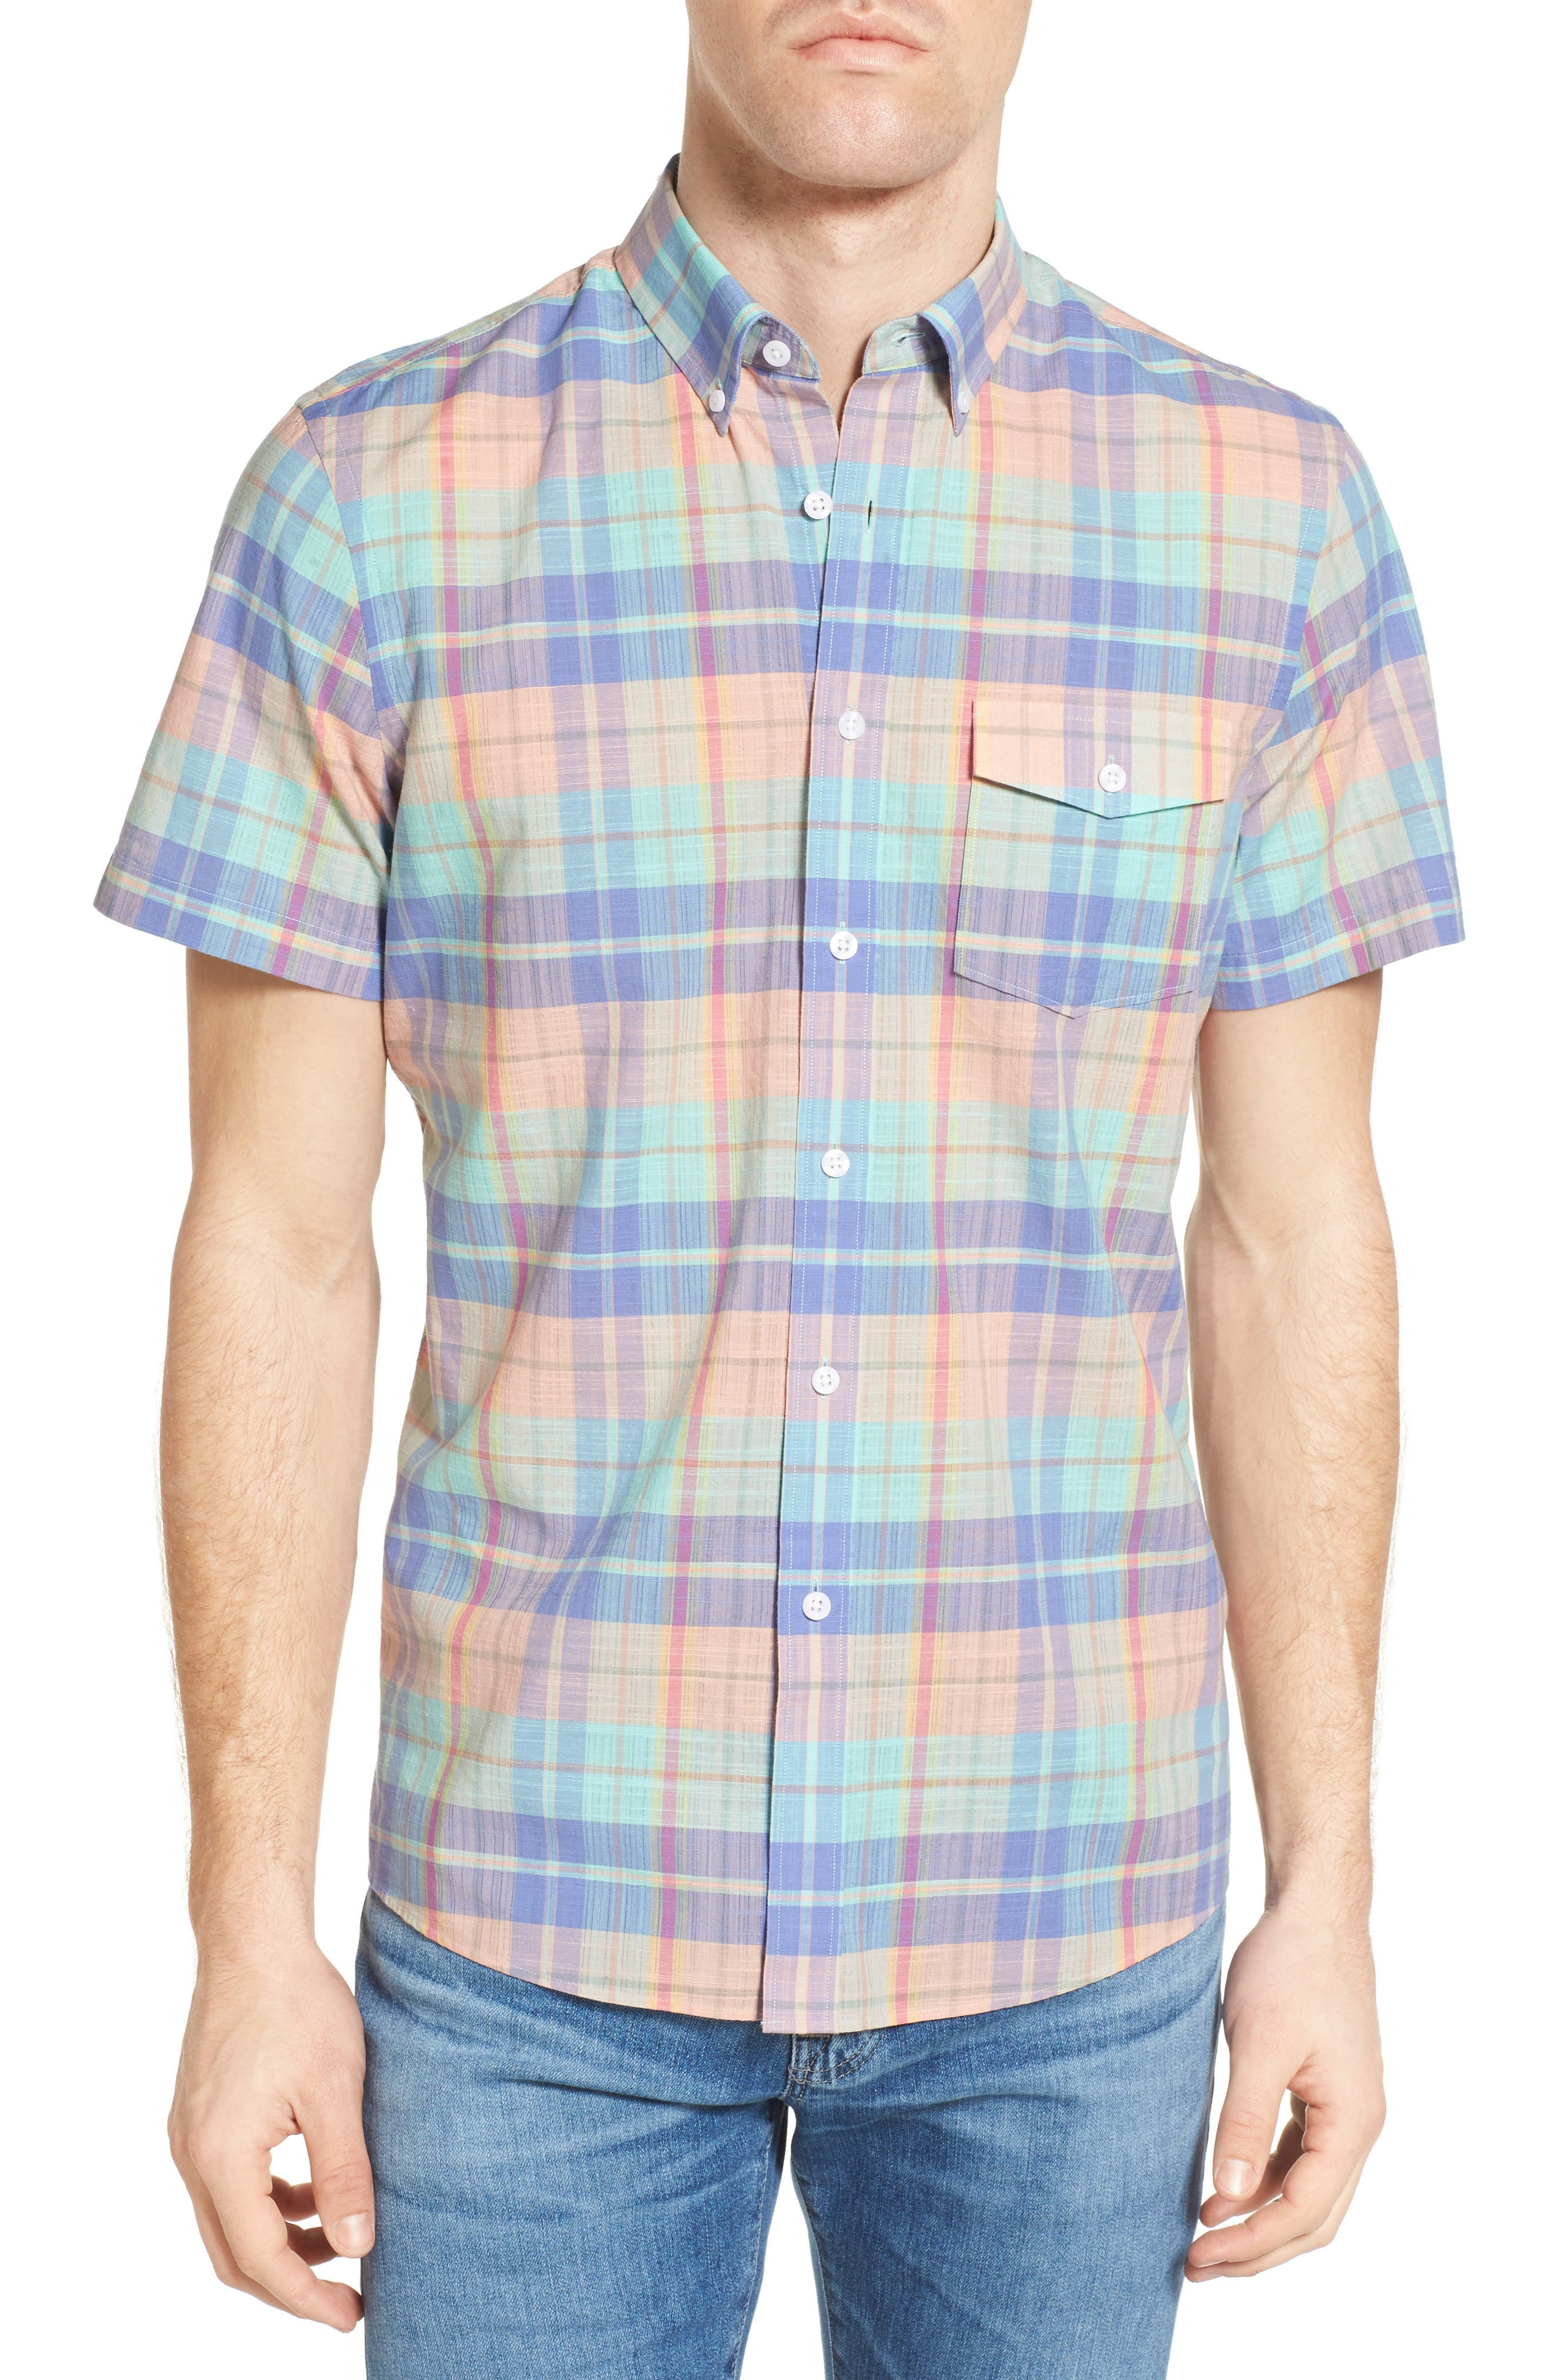 Nordstrom Men's Shop Slim Fit Plaid Sport Shirt